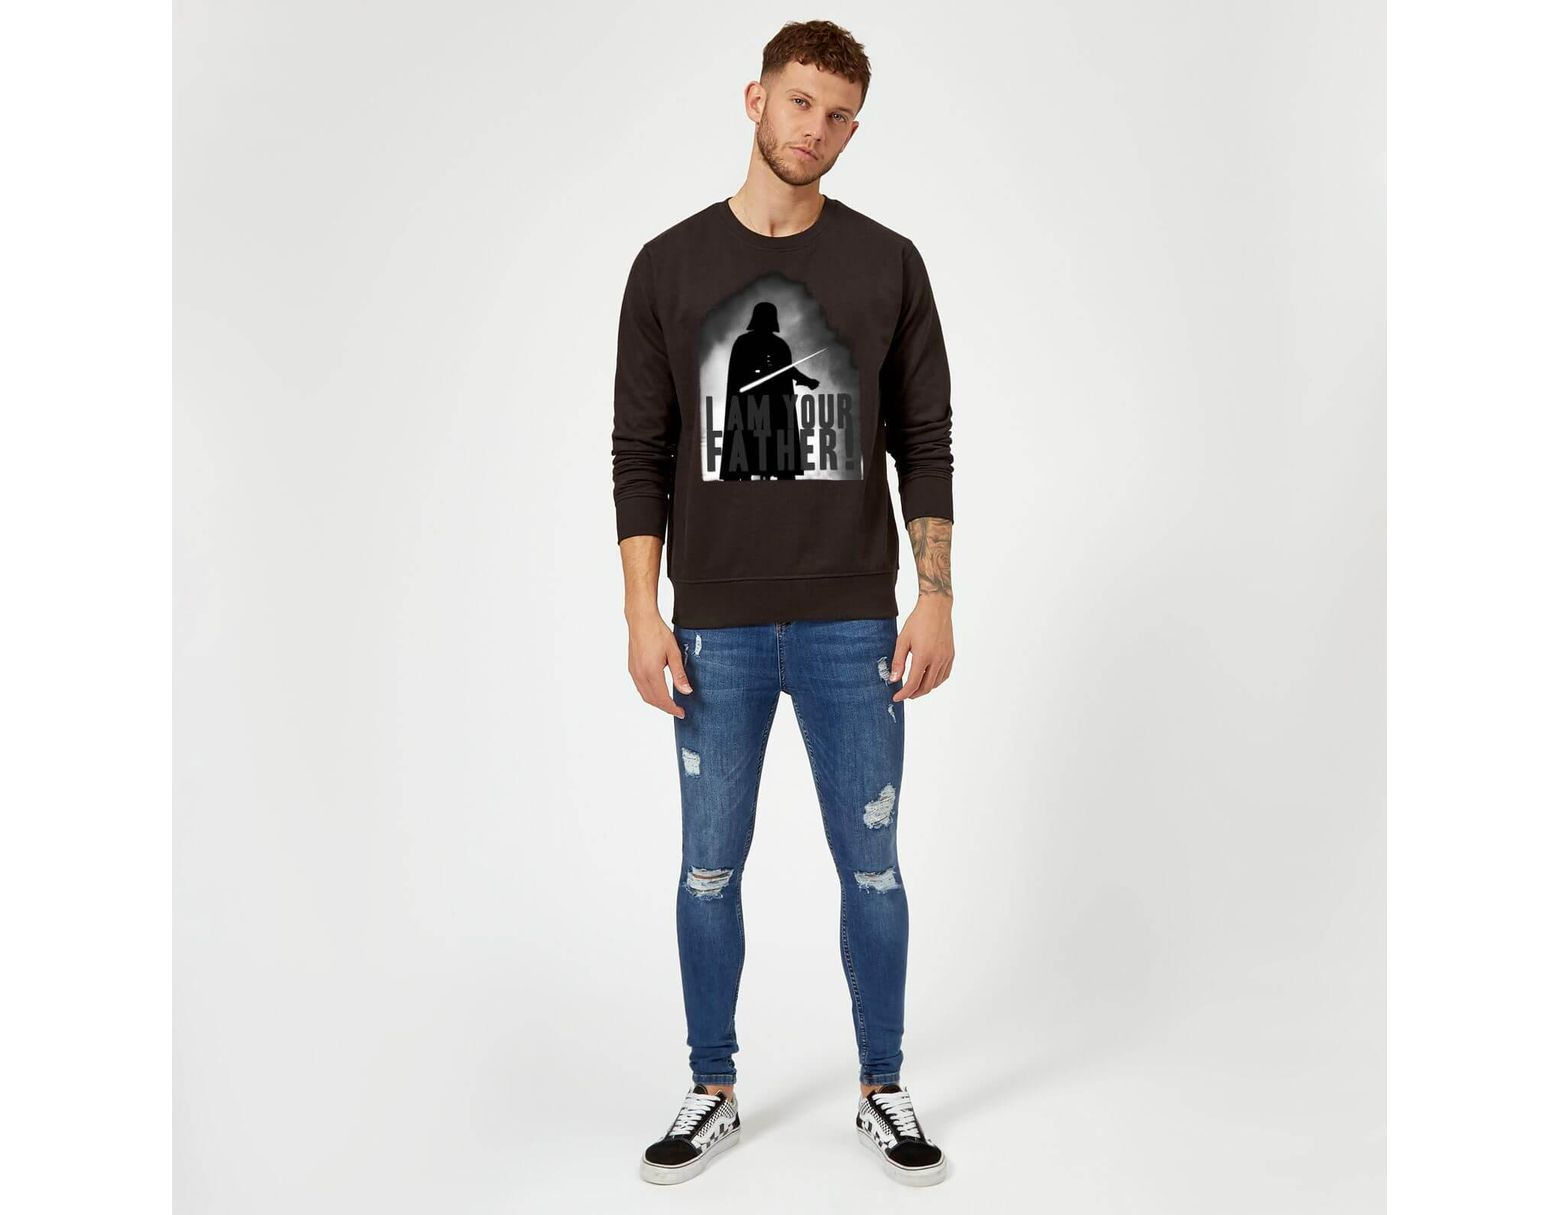 825a8dfd Star Wars Darth Vader I Am Your Father Silhouette Sweatshirt in Black for  Men - Lyst